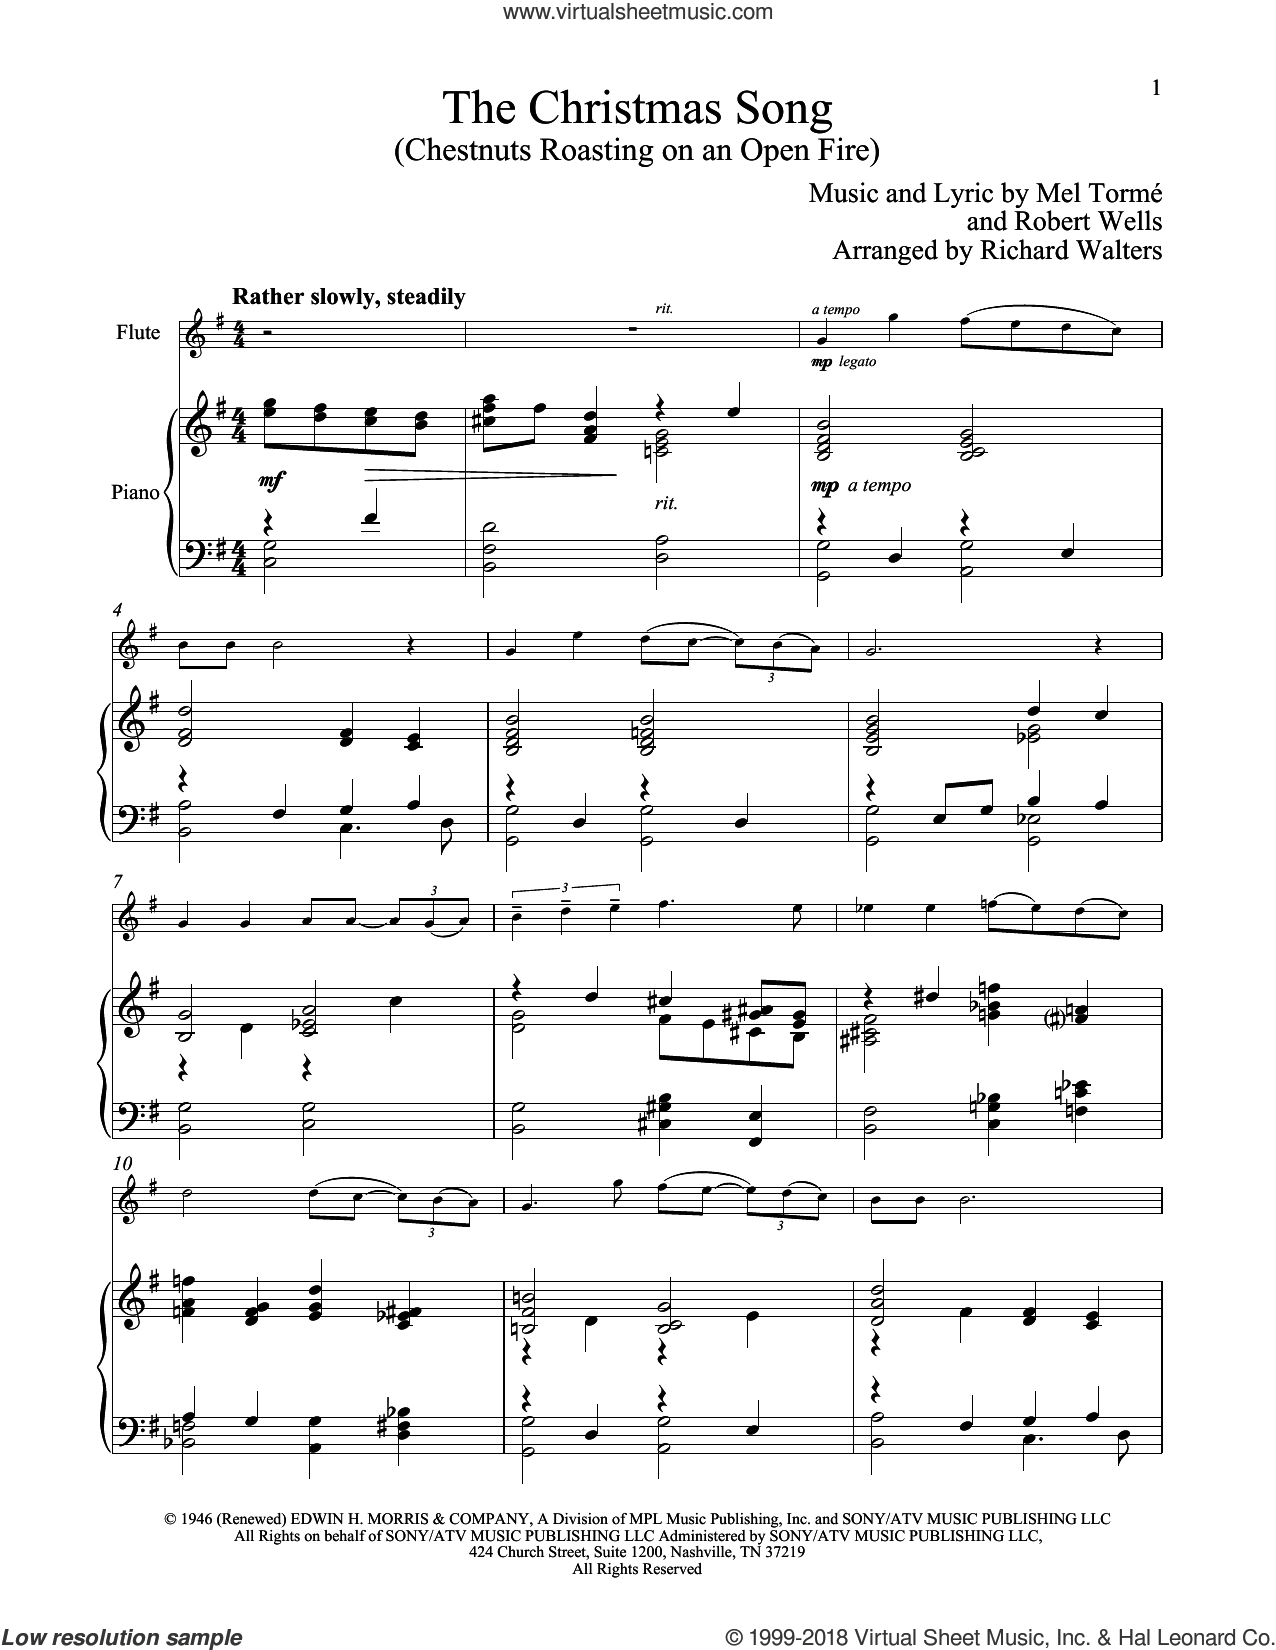 The Christmas Song (Chestnuts Roasting On An Open Fire) sheet music for flute and piano by Mel Torme and Robert Wells, intermediate skill level